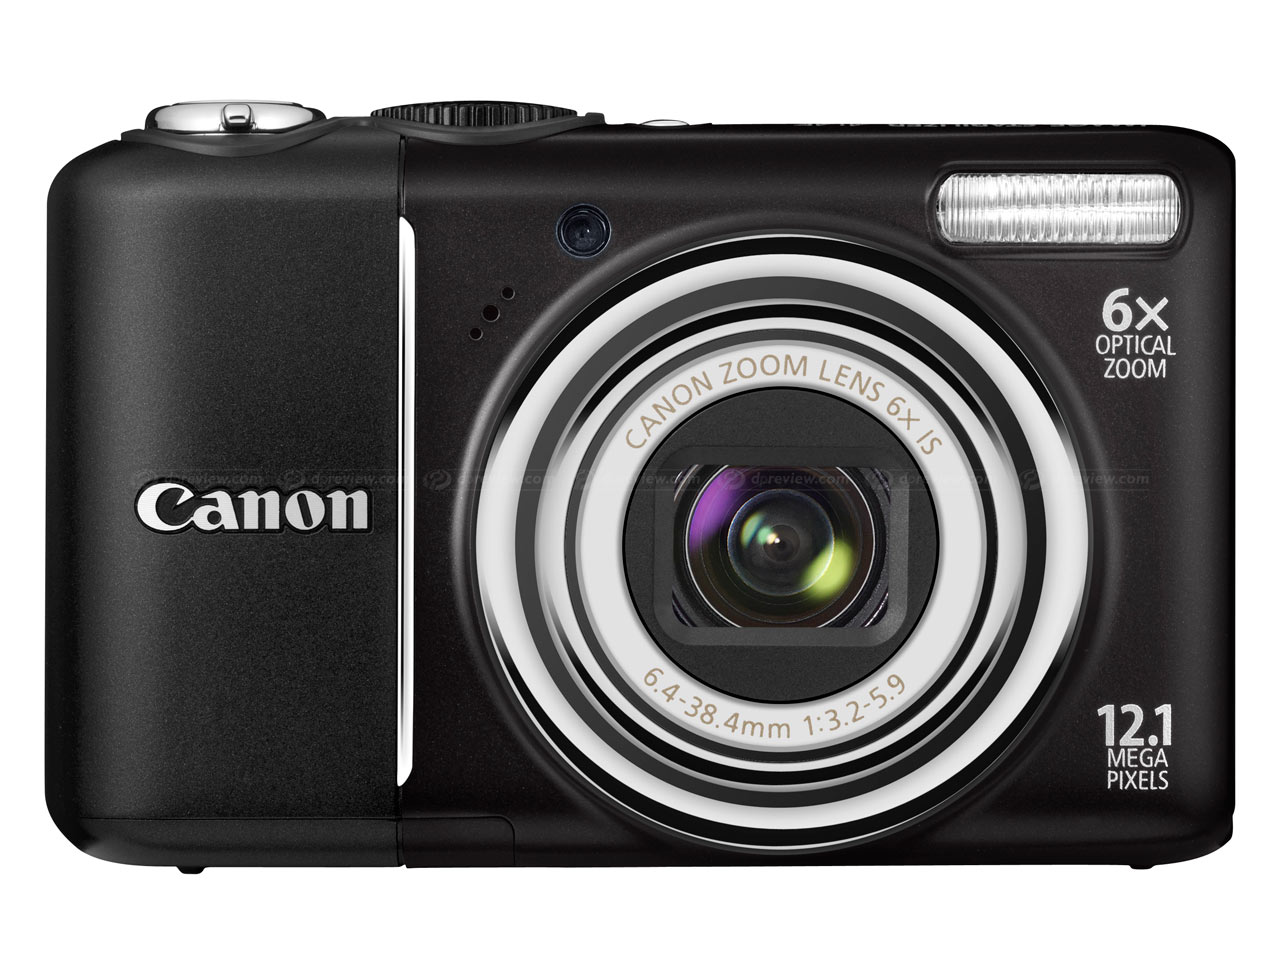 CANON A1100 DRIVERS WINDOWS 7